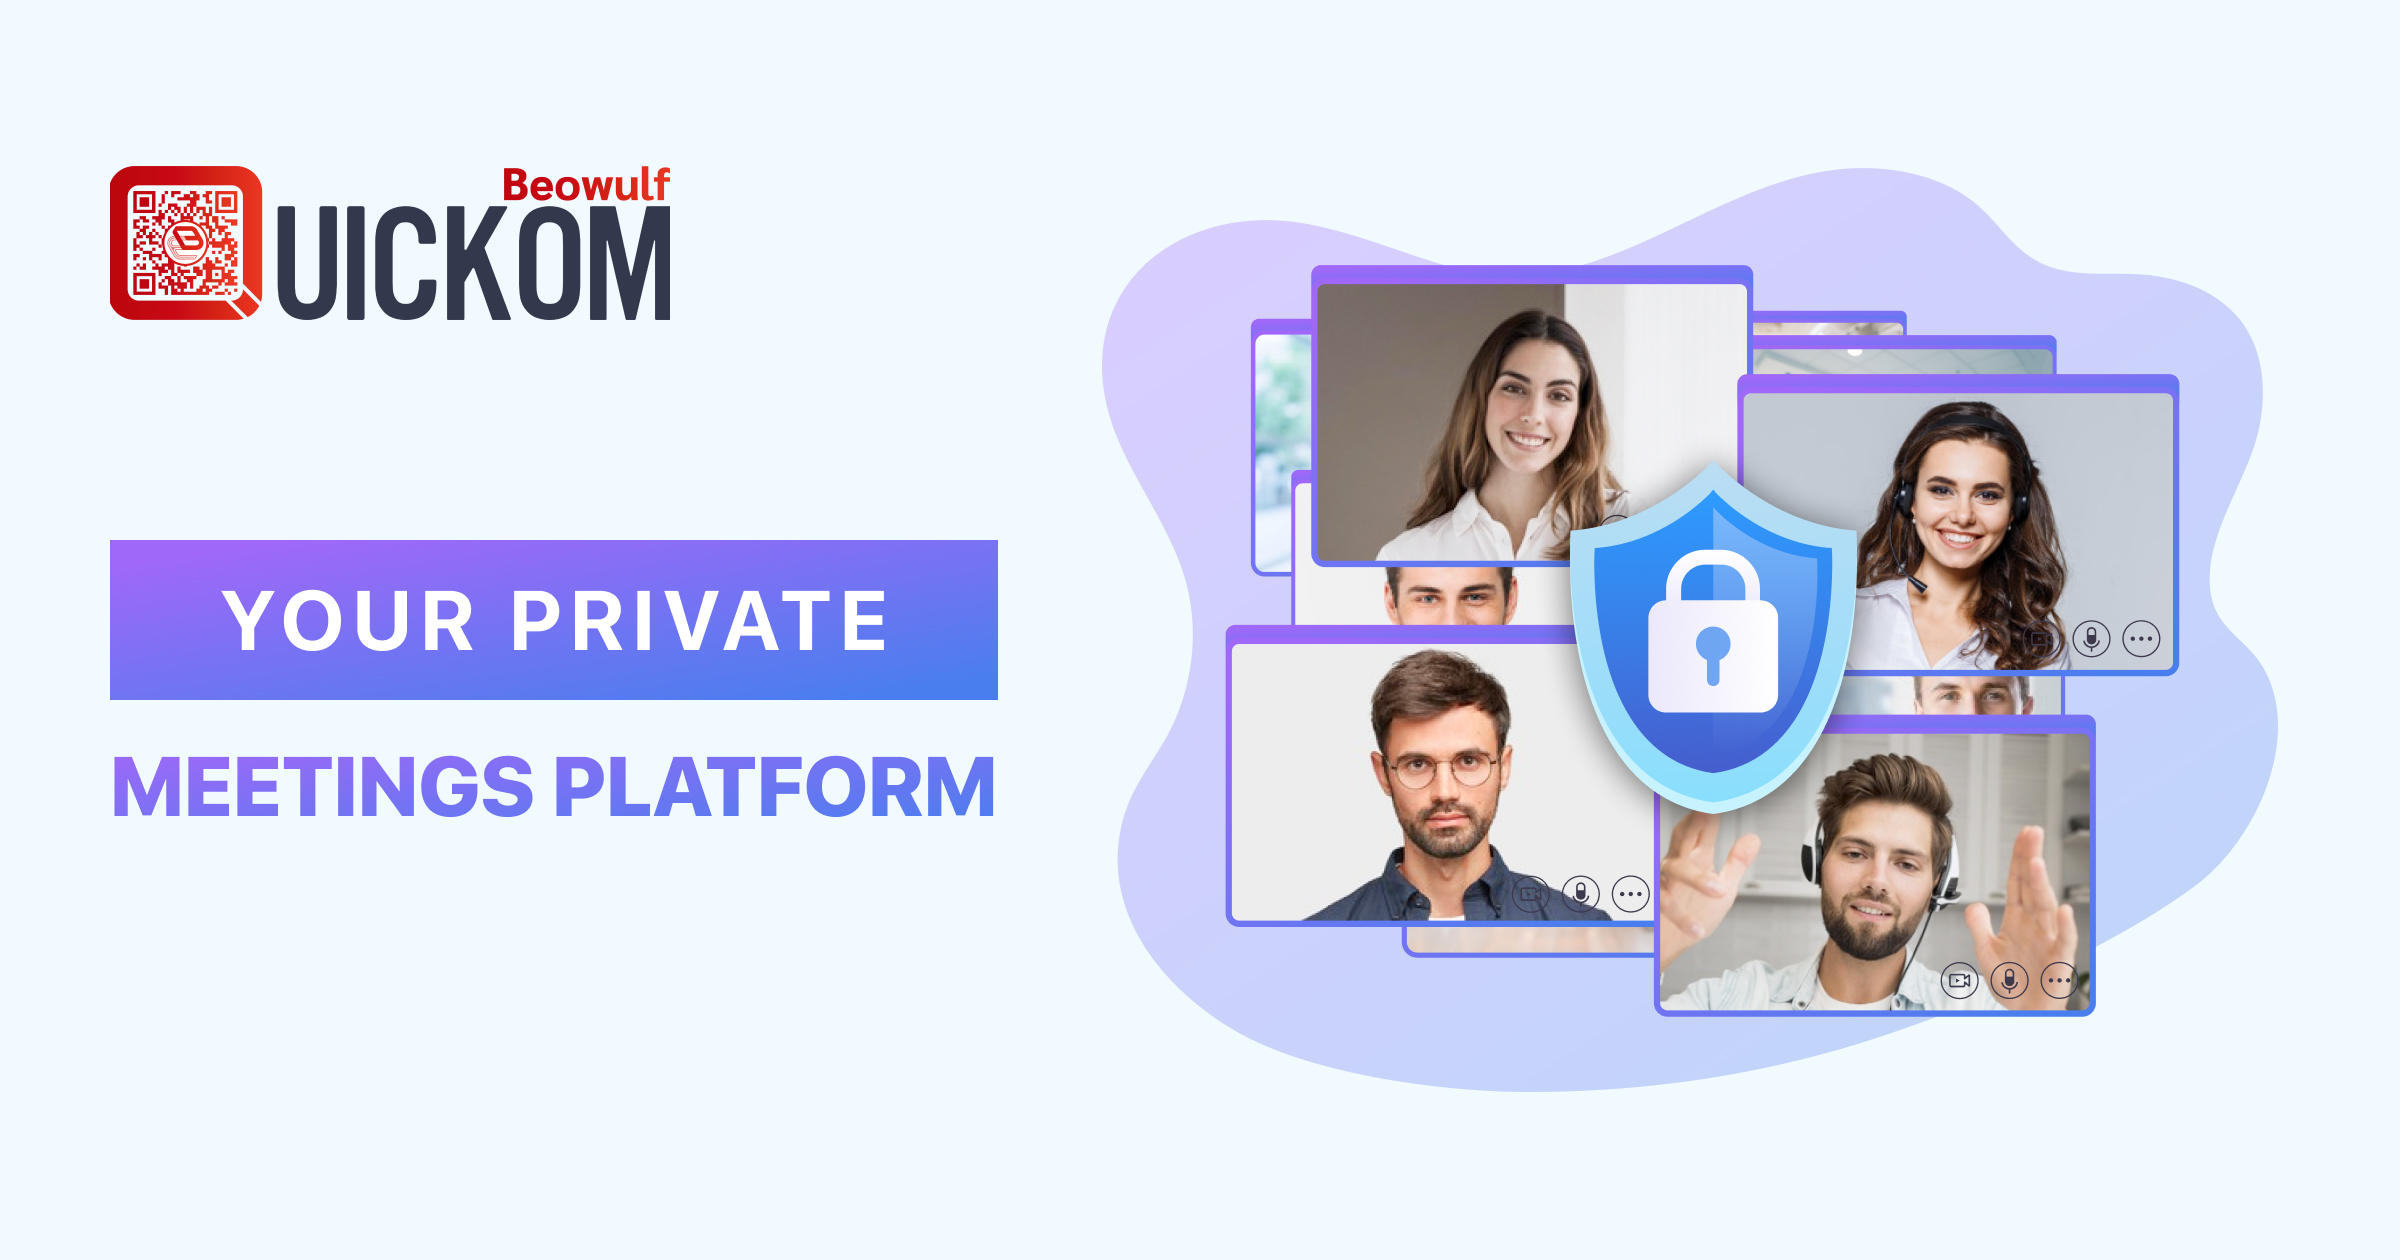 QUICKOM Reinvents Online Meetings with Unparalleled End-to-End Encryption to Protect Confidential Communications Beowulf Blockchain